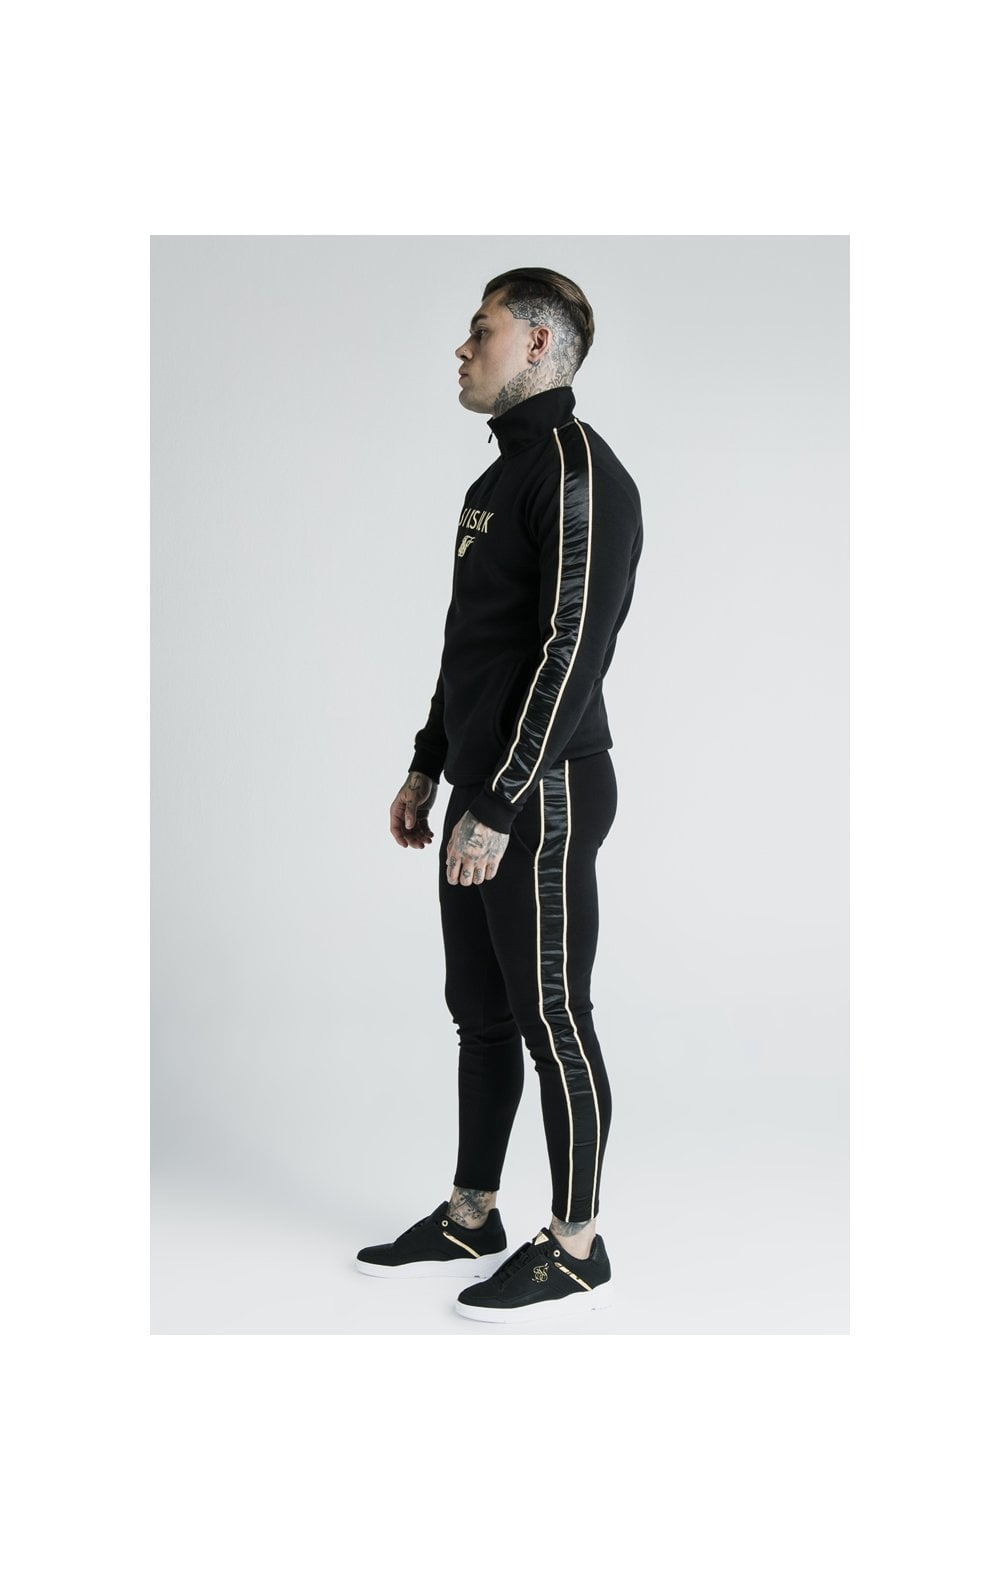 Load image into Gallery viewer, SikSilk x Dani Alves Quarter Zip Rope Track Top – Black (5)